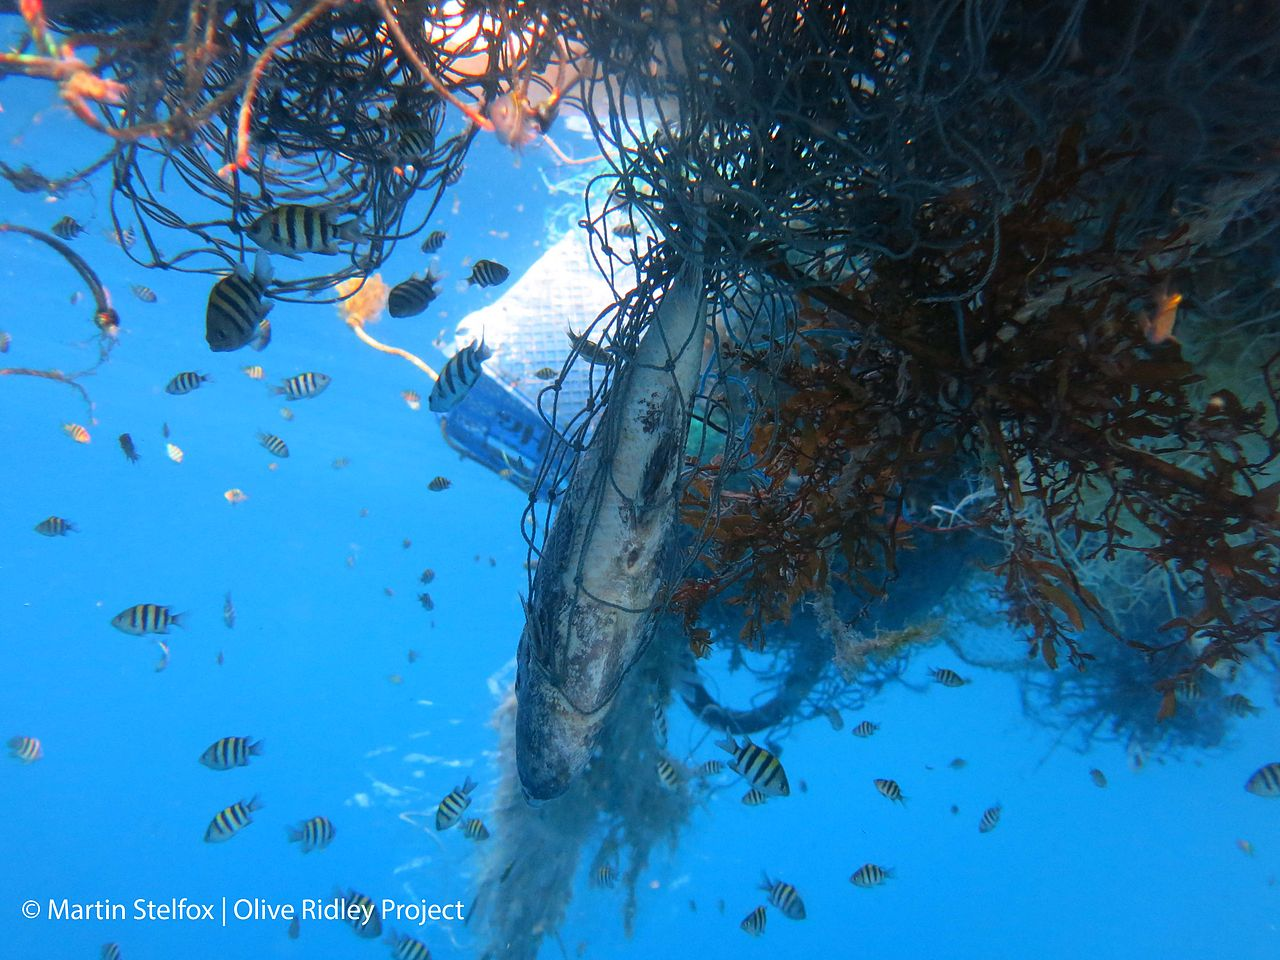 A fish and other marine life trapped in a discarded fishing net.